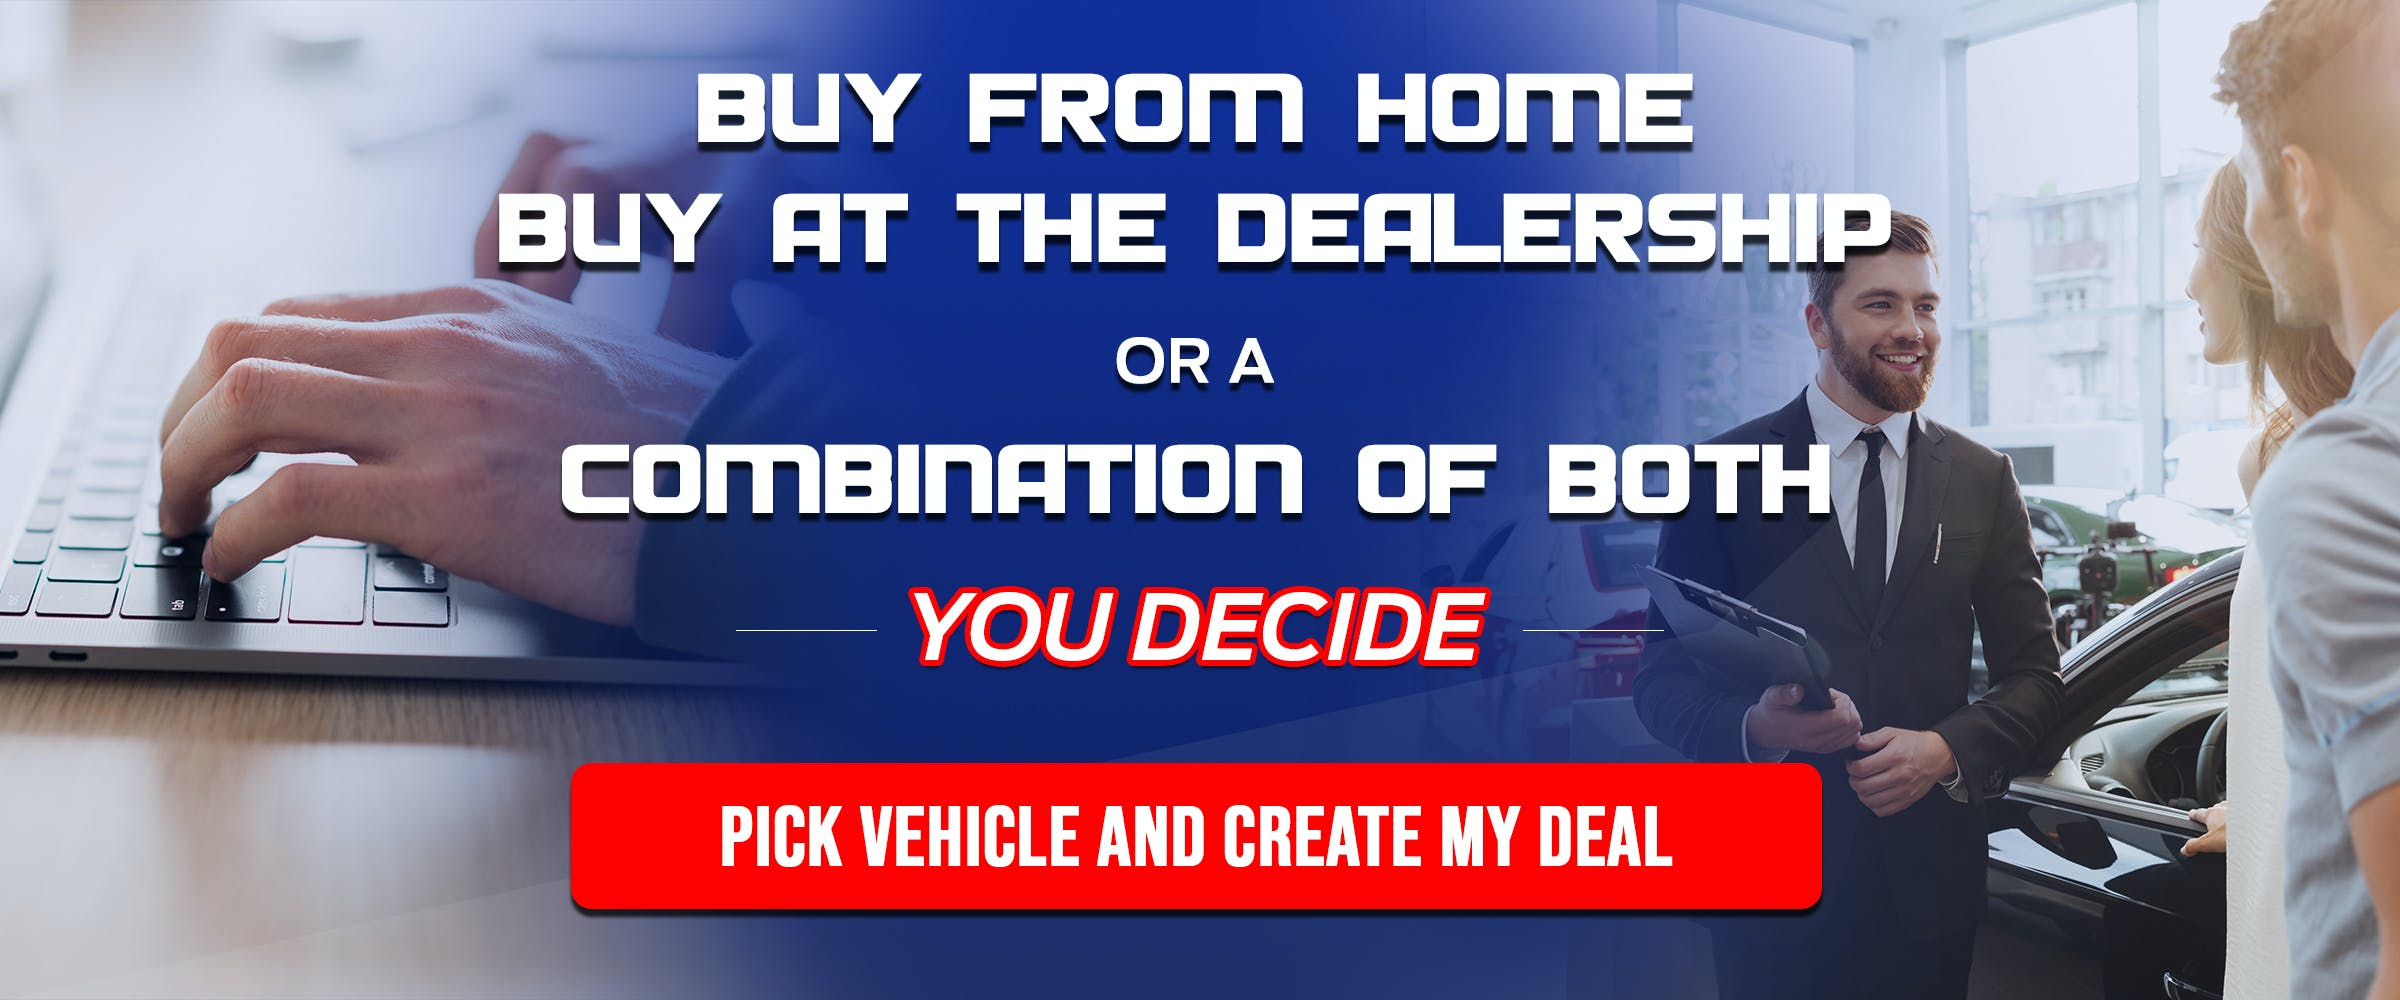 Buy from home or at the dealership